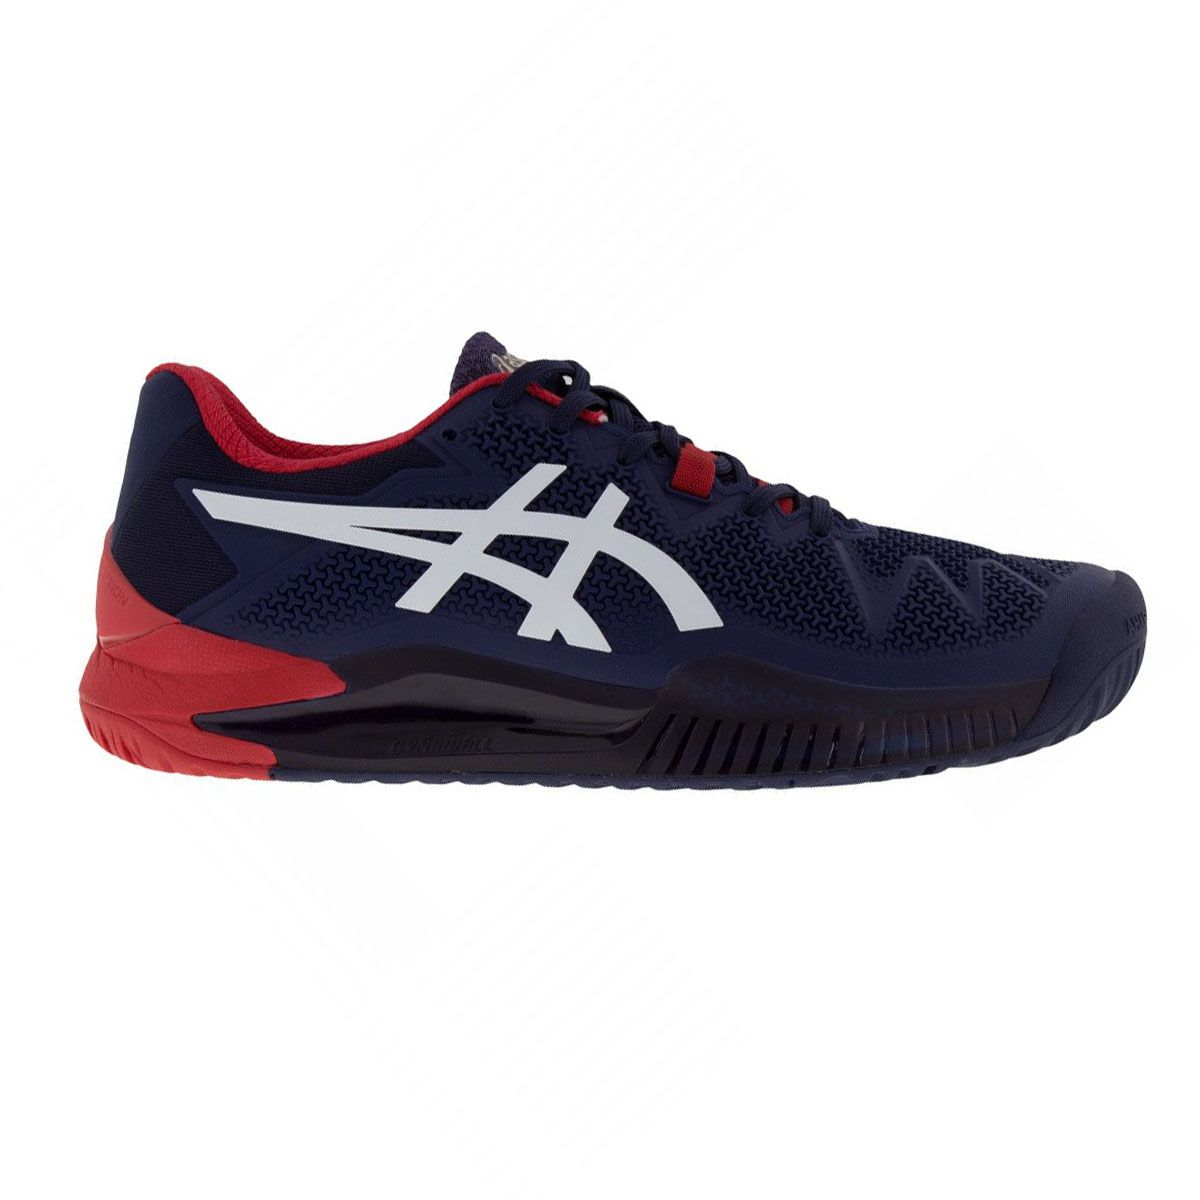 Tênis Asics Gel-Resolution 8 Masculino